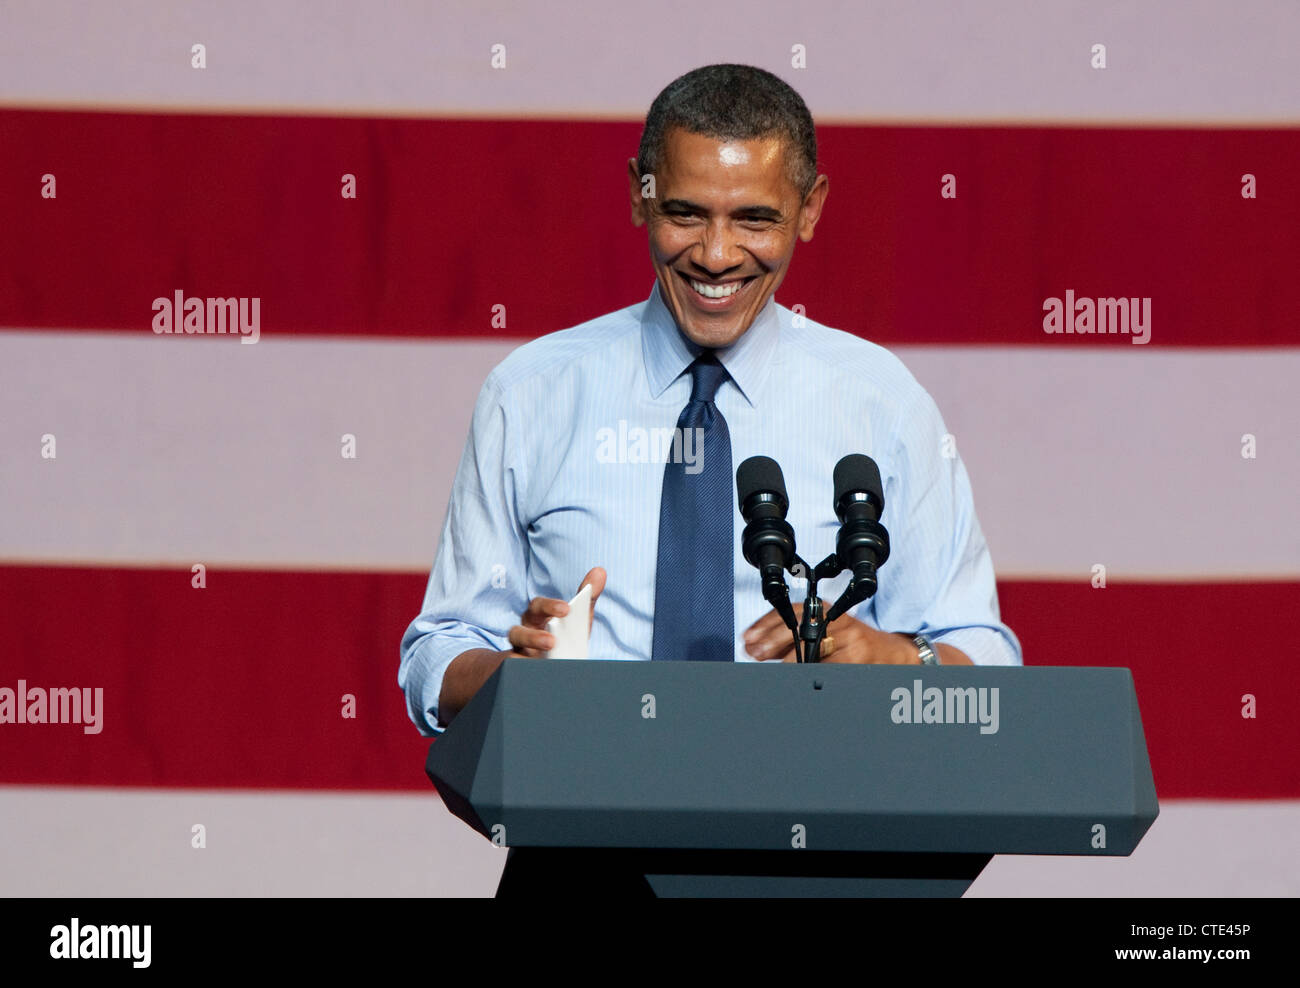 July 17th, 2012: USA President Barack Obama, speaks to a crowd of supporters at the Austin Music Hall in Austin, - Stock Image